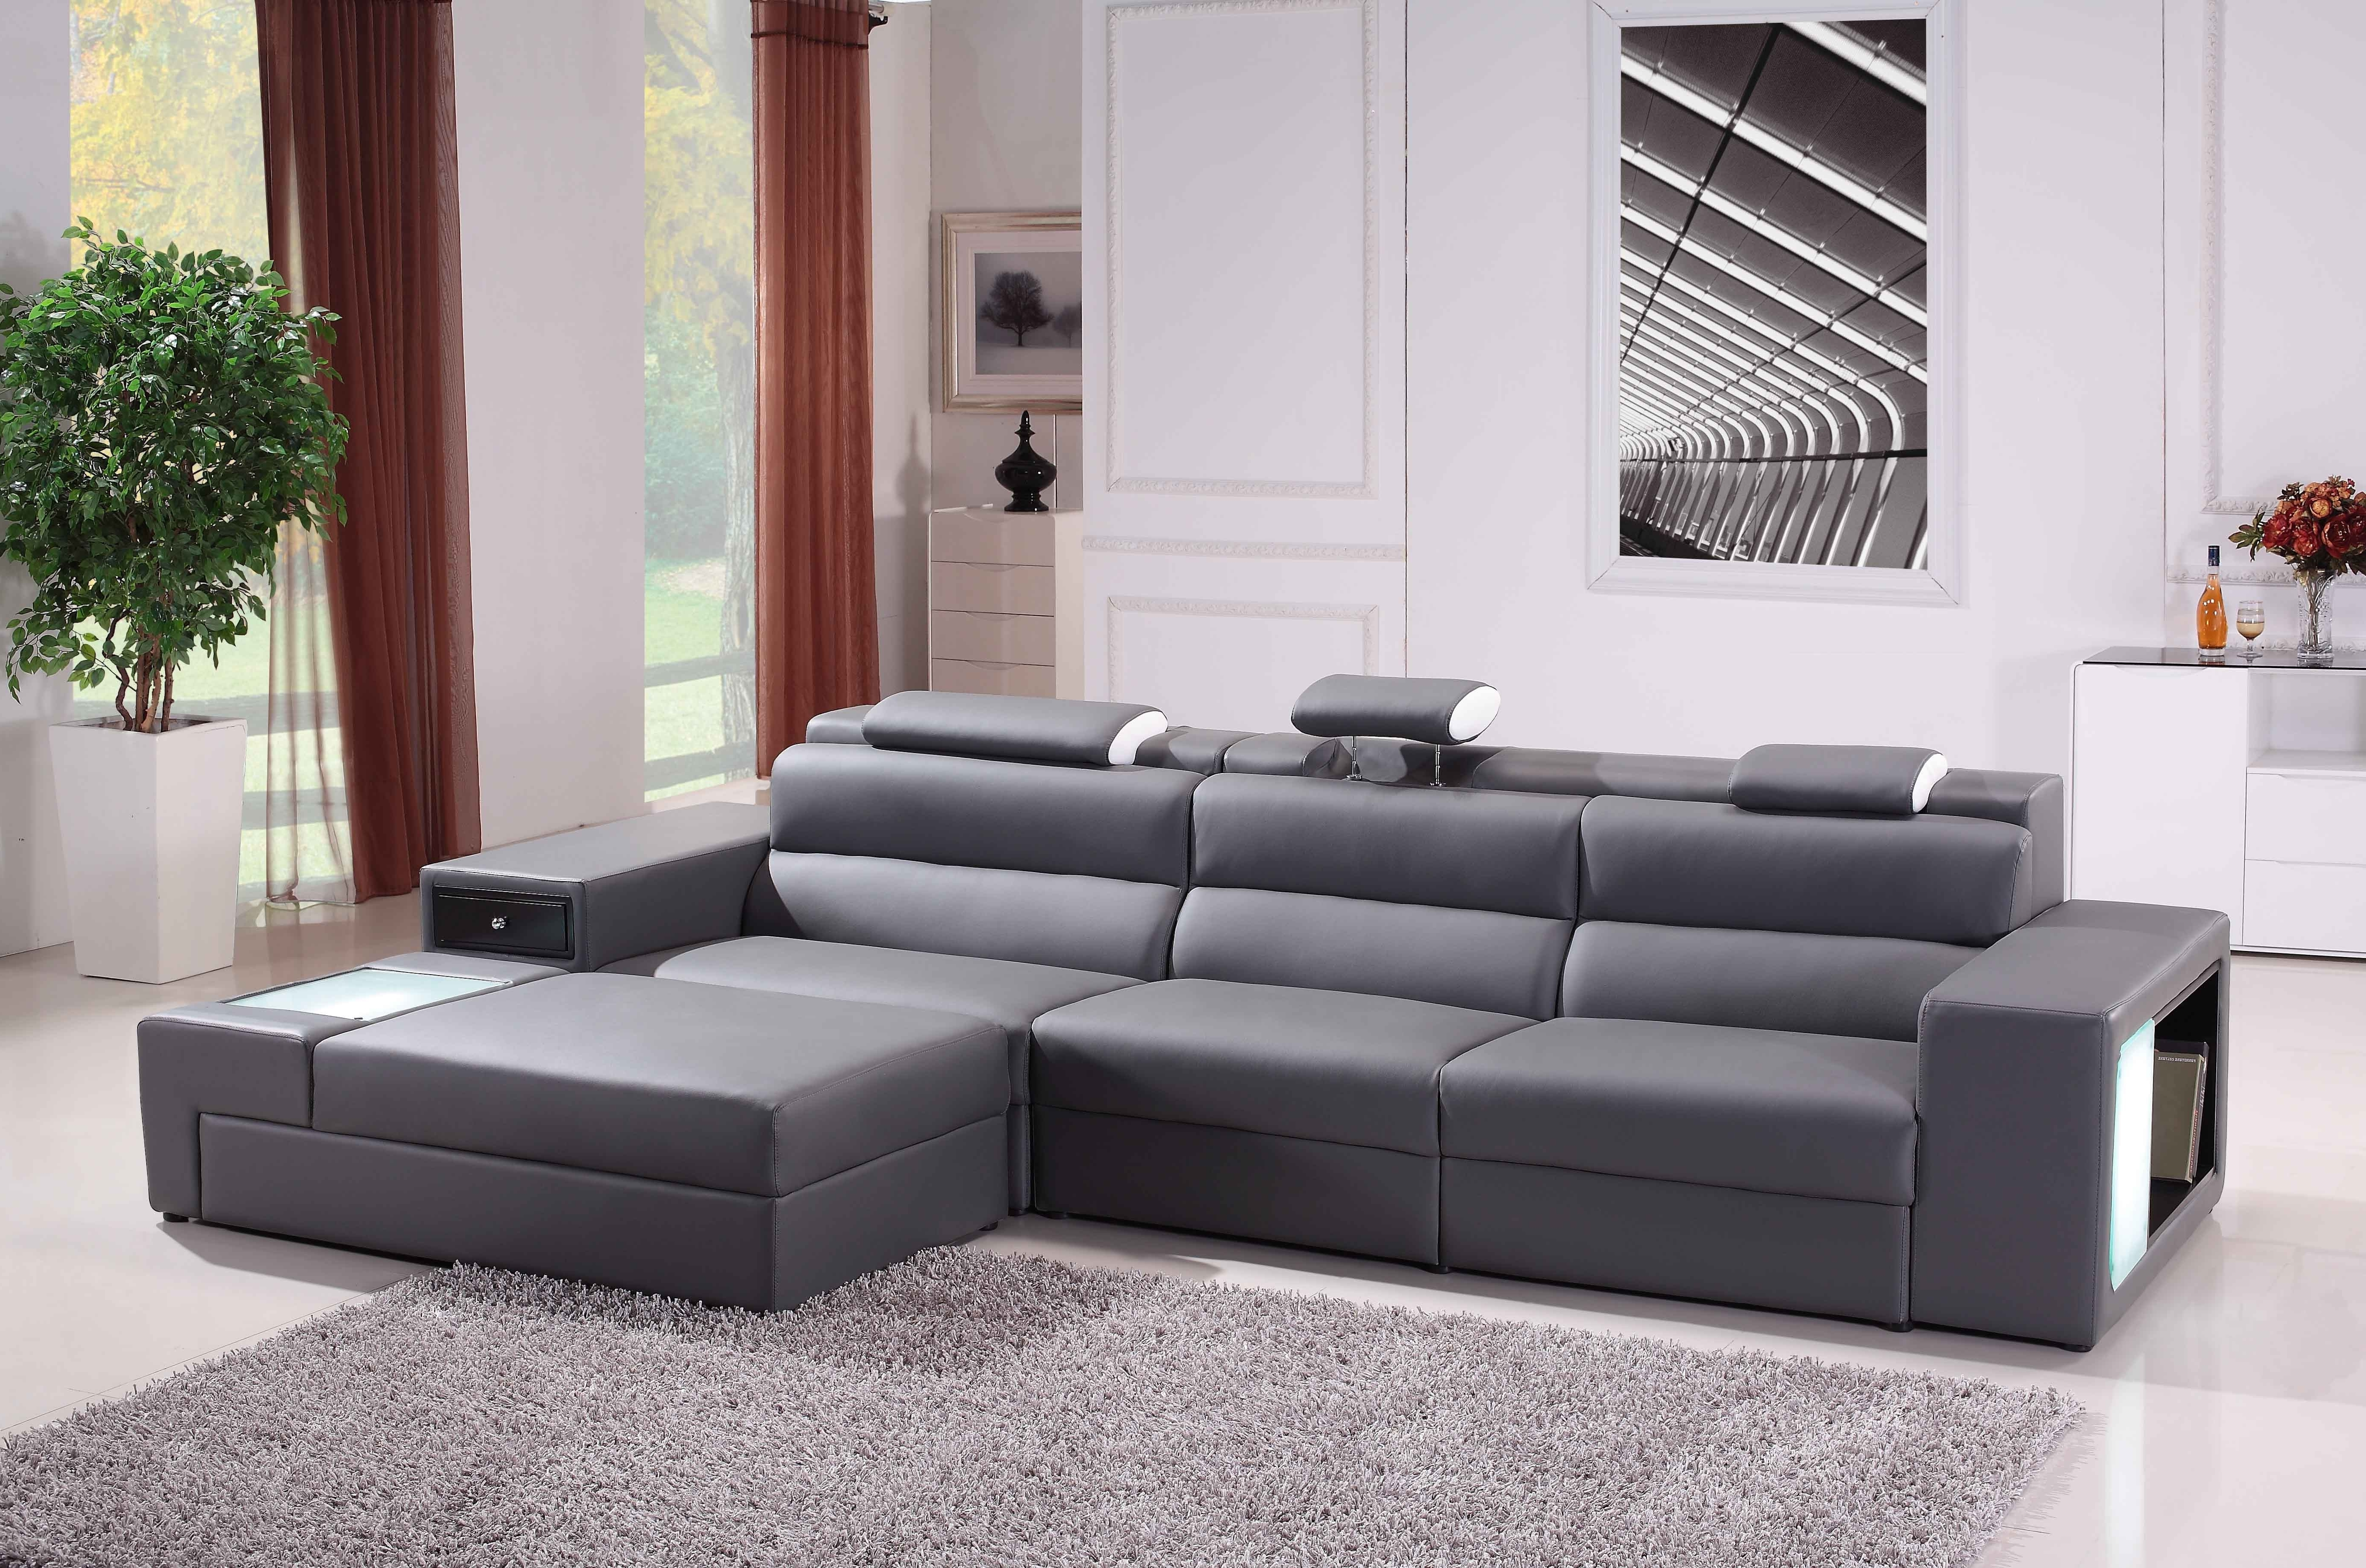 Latest Leather Sectionals With Chaise Lounge Intended For Gray Leather Sofa Chaise Lounge With Three Seat Placed On The (View 15 of 15)